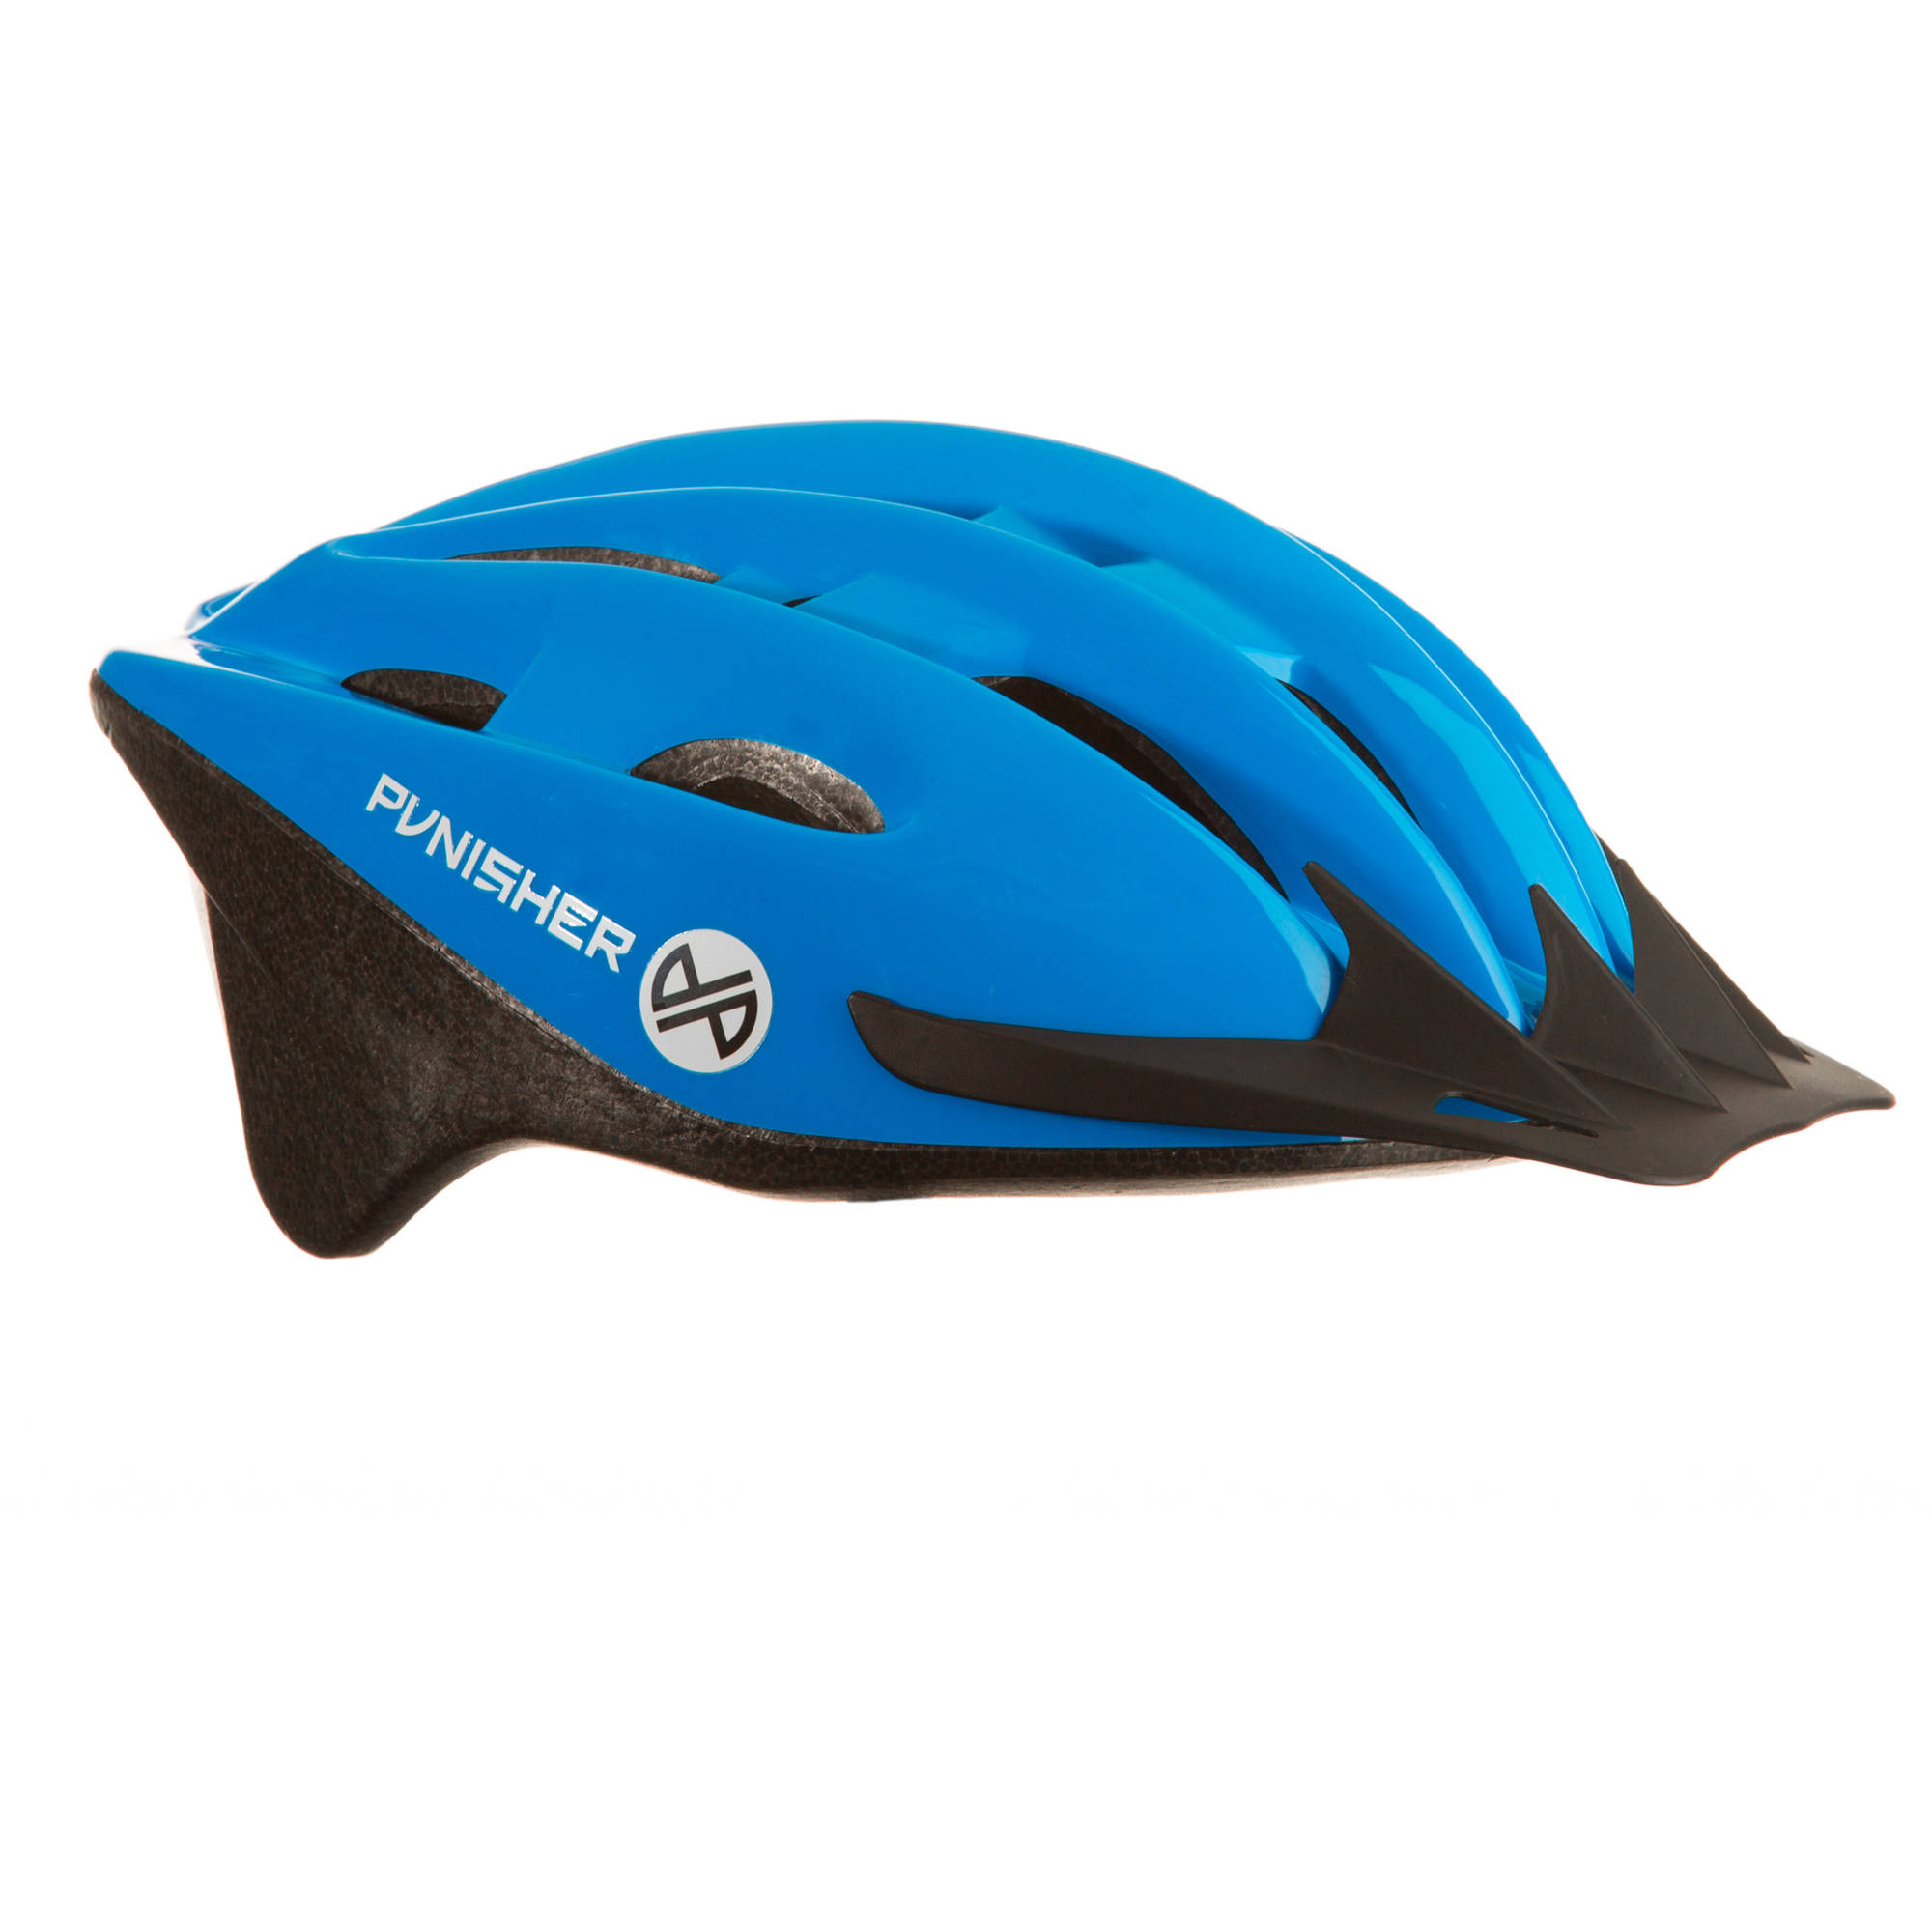 Punisher 18-Vent Adult Cycling Helmet with Imitation In-Mold, Blue, Ages 12+